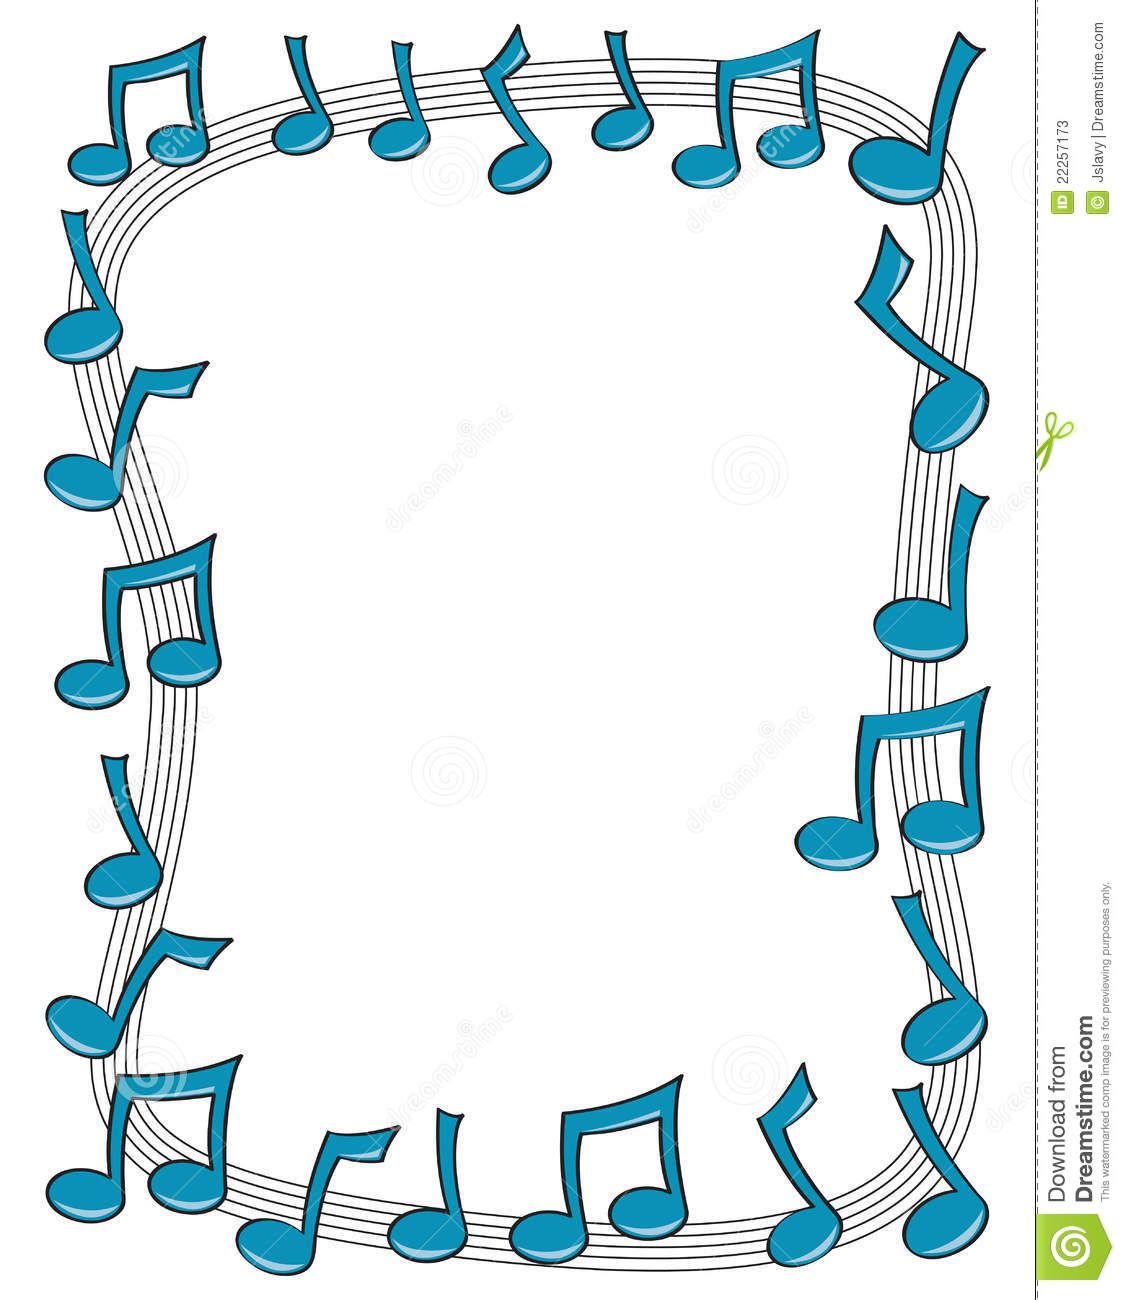 math in music education kids of new generation should have